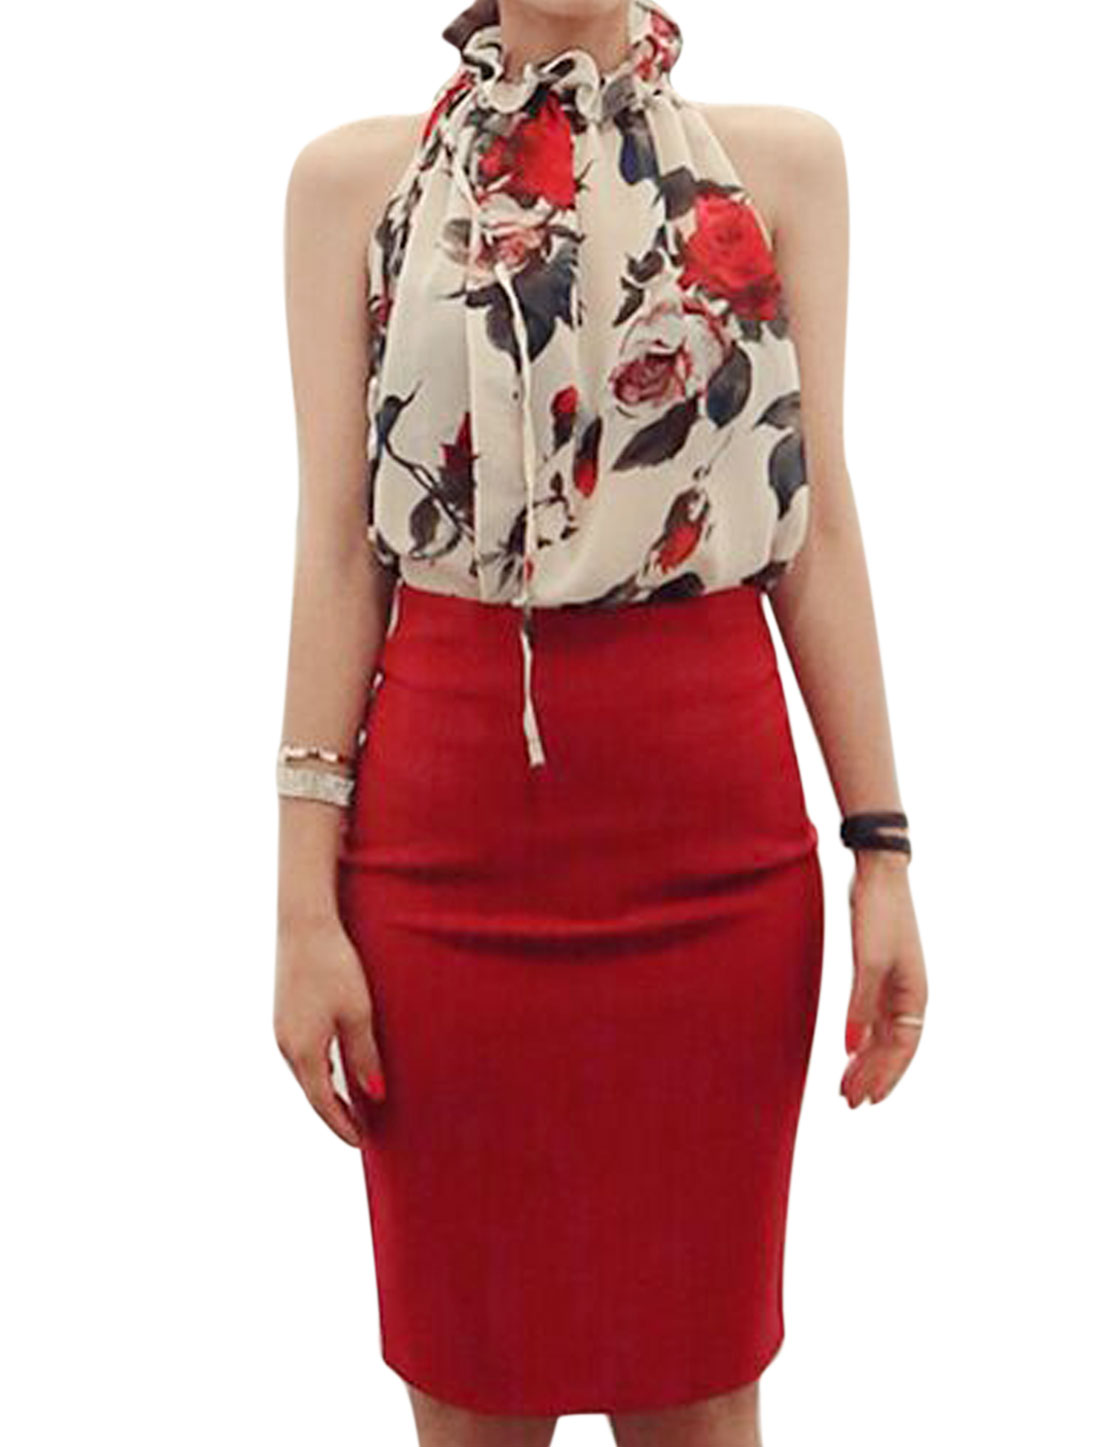 Ladies Sleeveless Floral Print Semi Sheer Casual Chiffon Blouse Beige Red XS